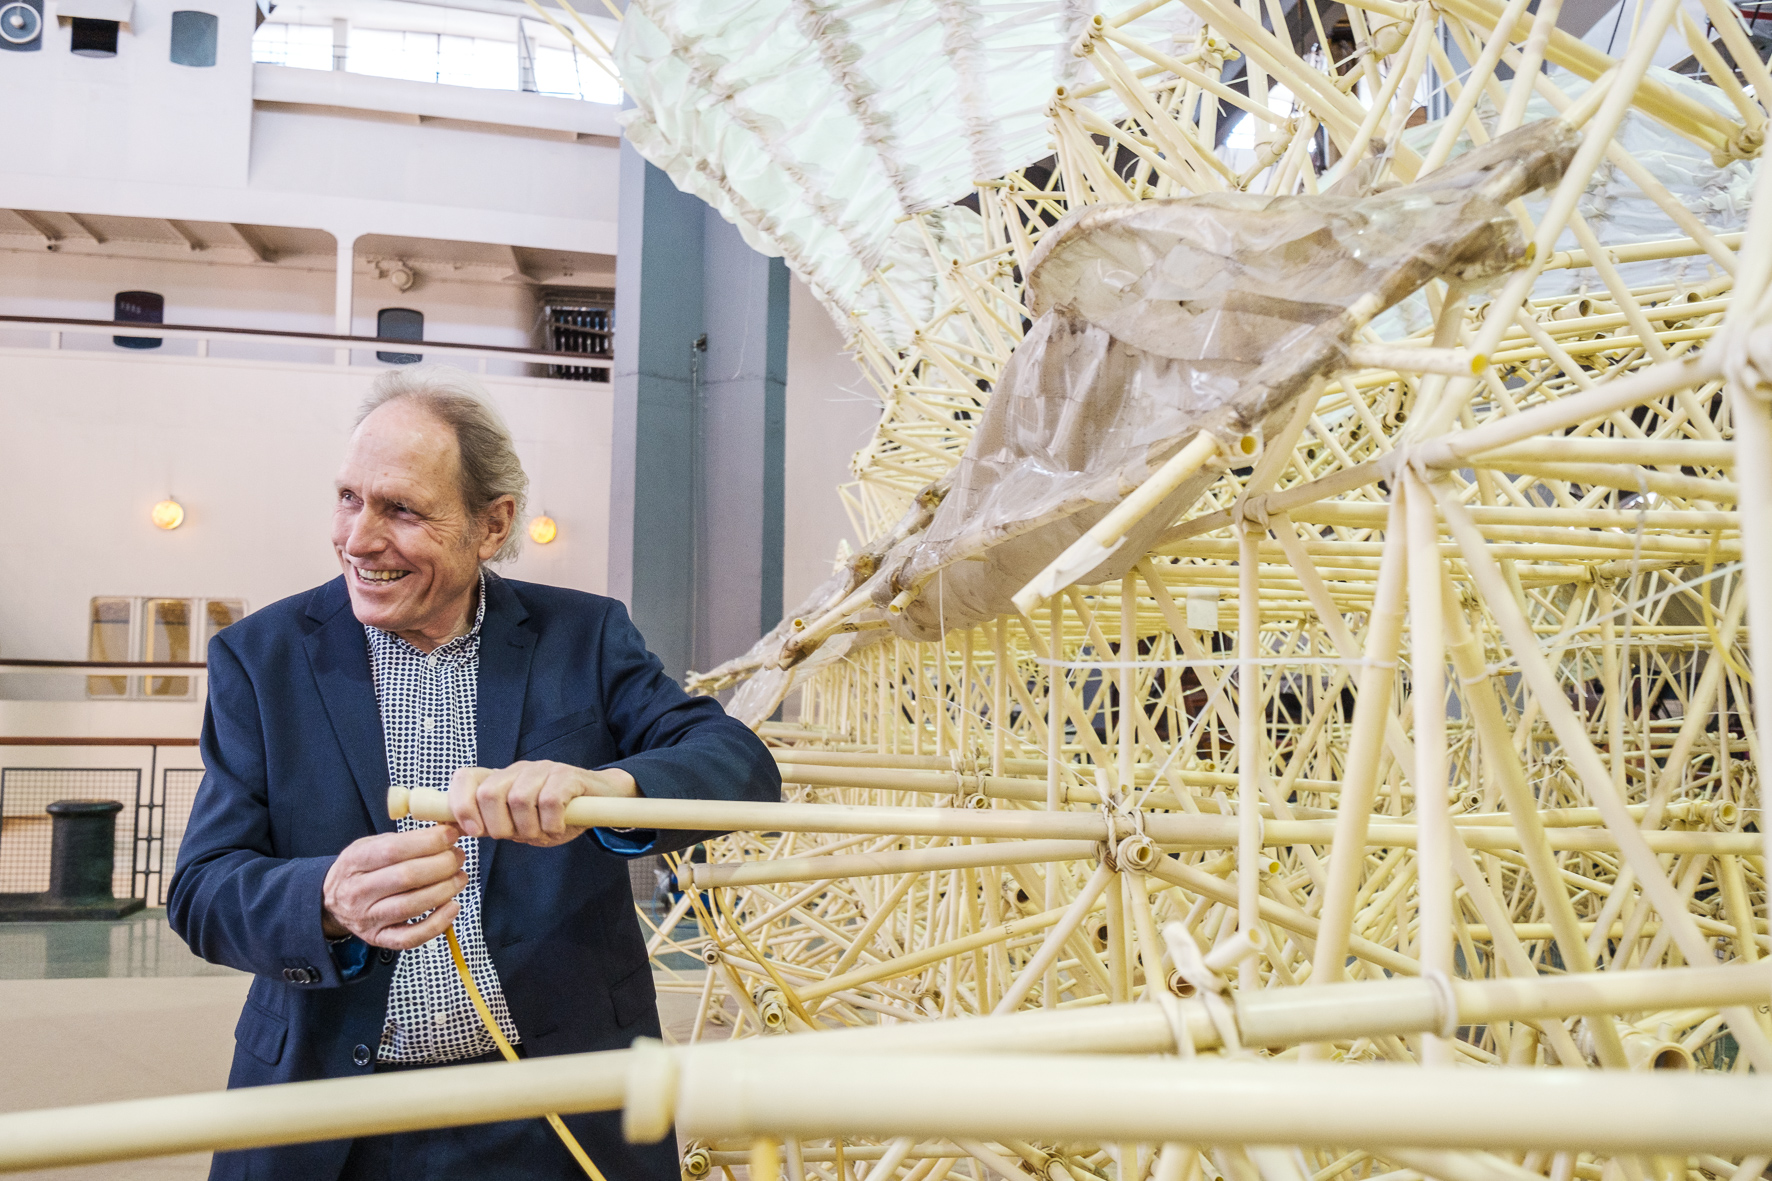 Theo Jansen Museo Paolo Soave 0118